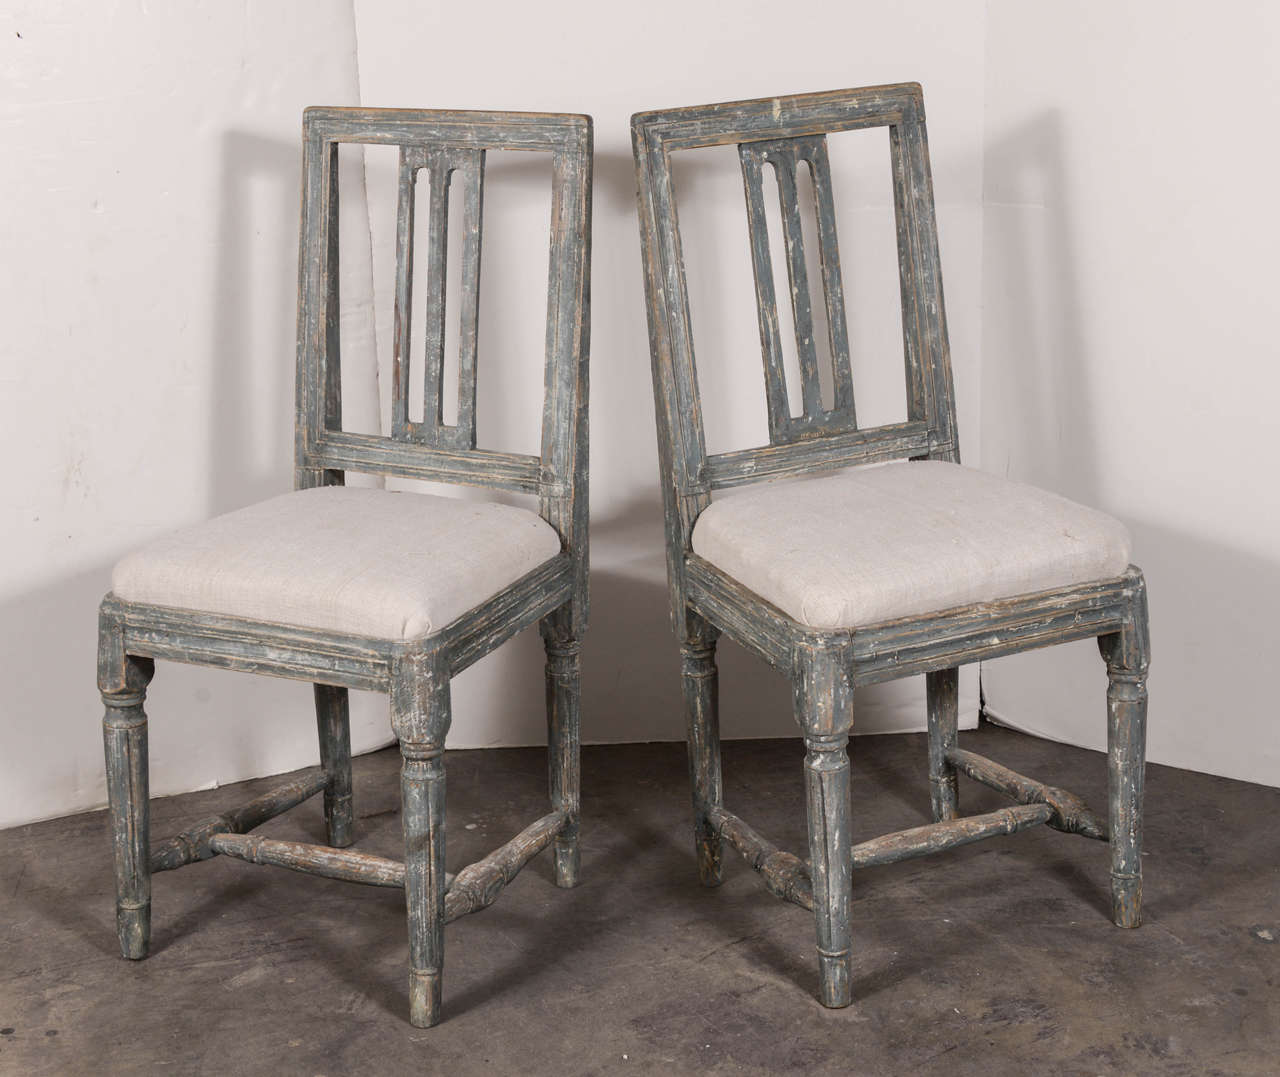 Swedish Gustavian Blue Painted Slat Back Dining Chairs from circa 1790 3